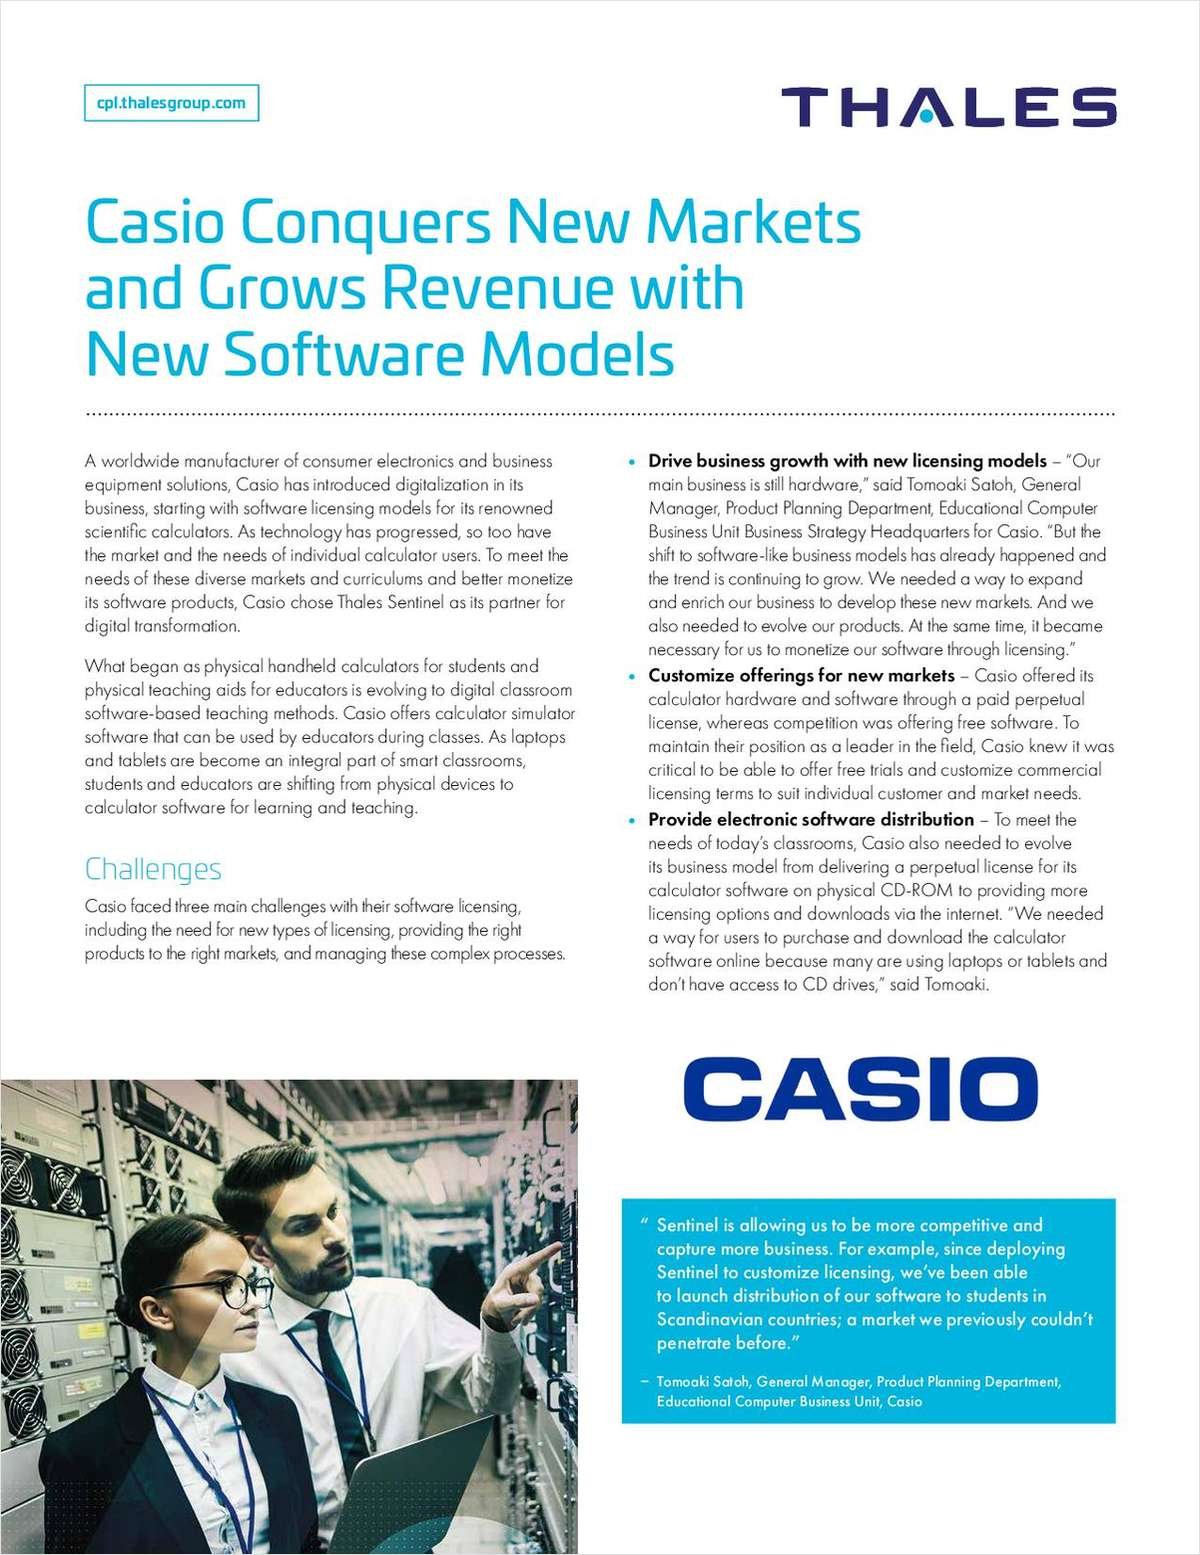 Casio Conquers New Markets and Grows Revenue with New Software Models